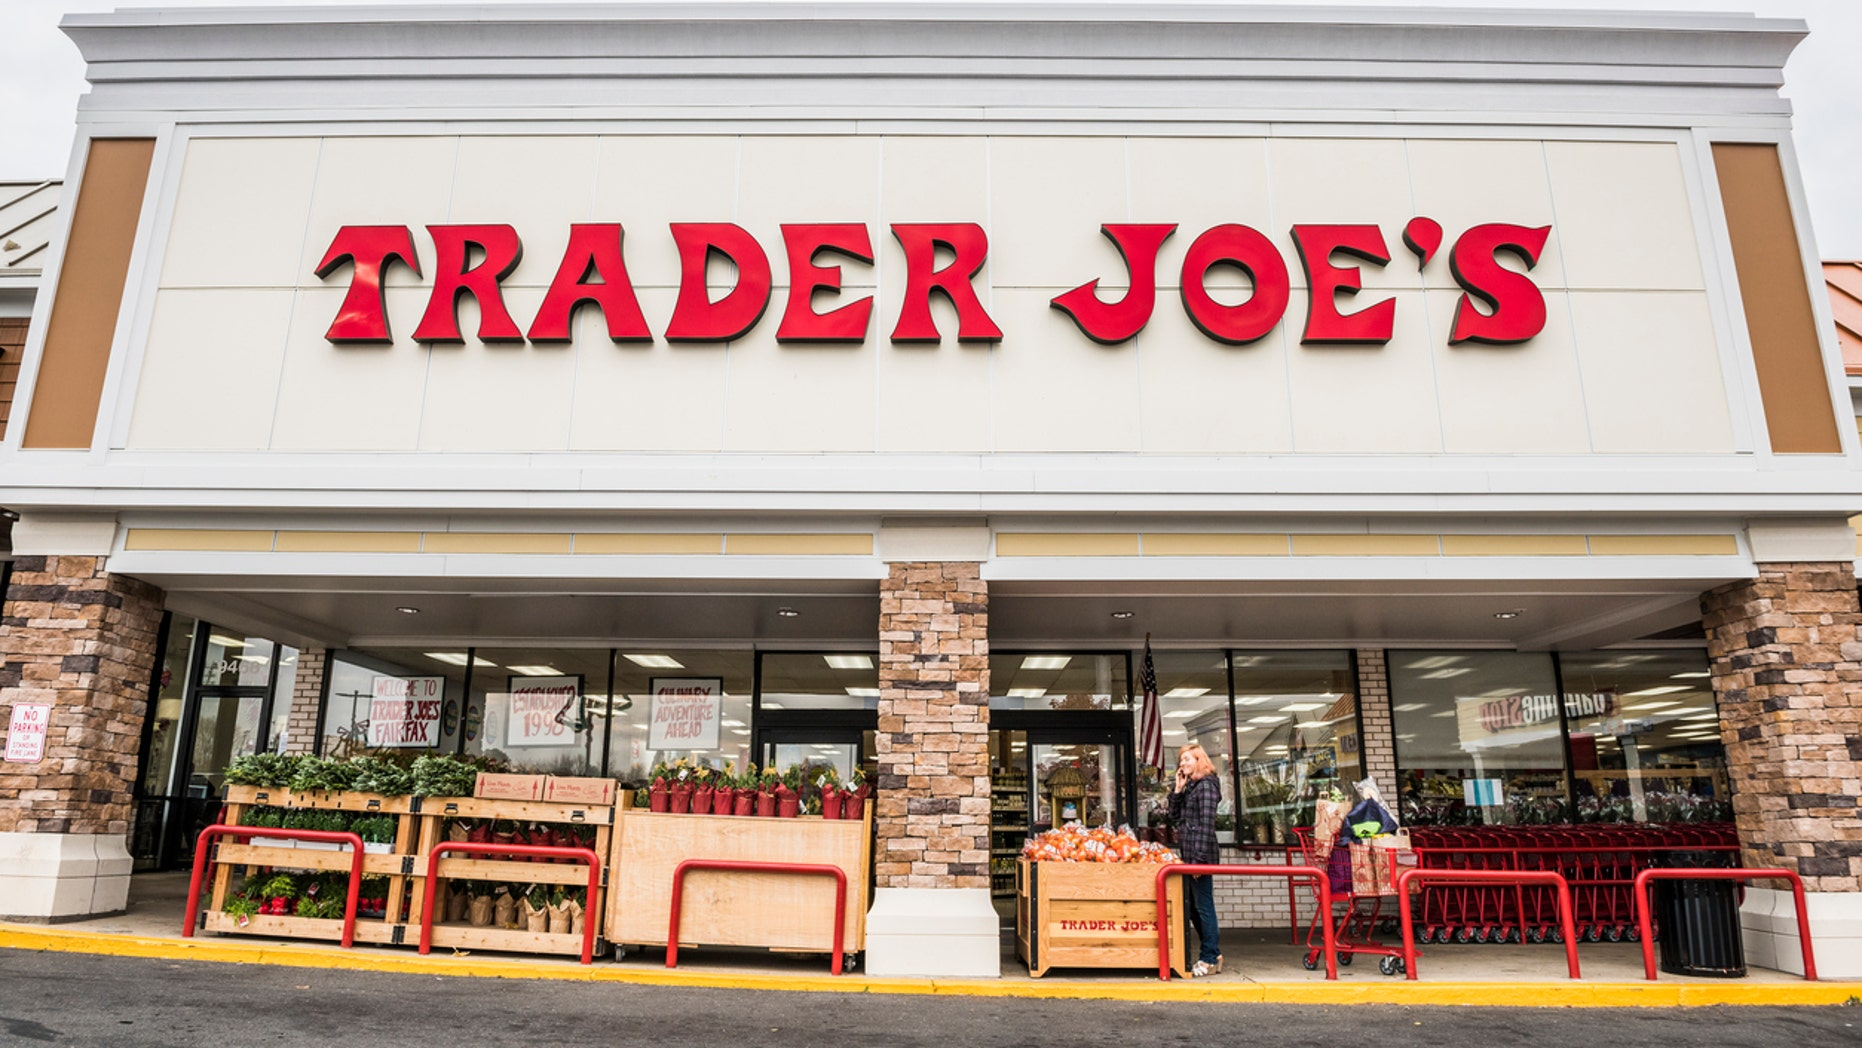 The salads and wraps were sold at popular stores such as Trader Joe's, Walgreen's, and Kroger.